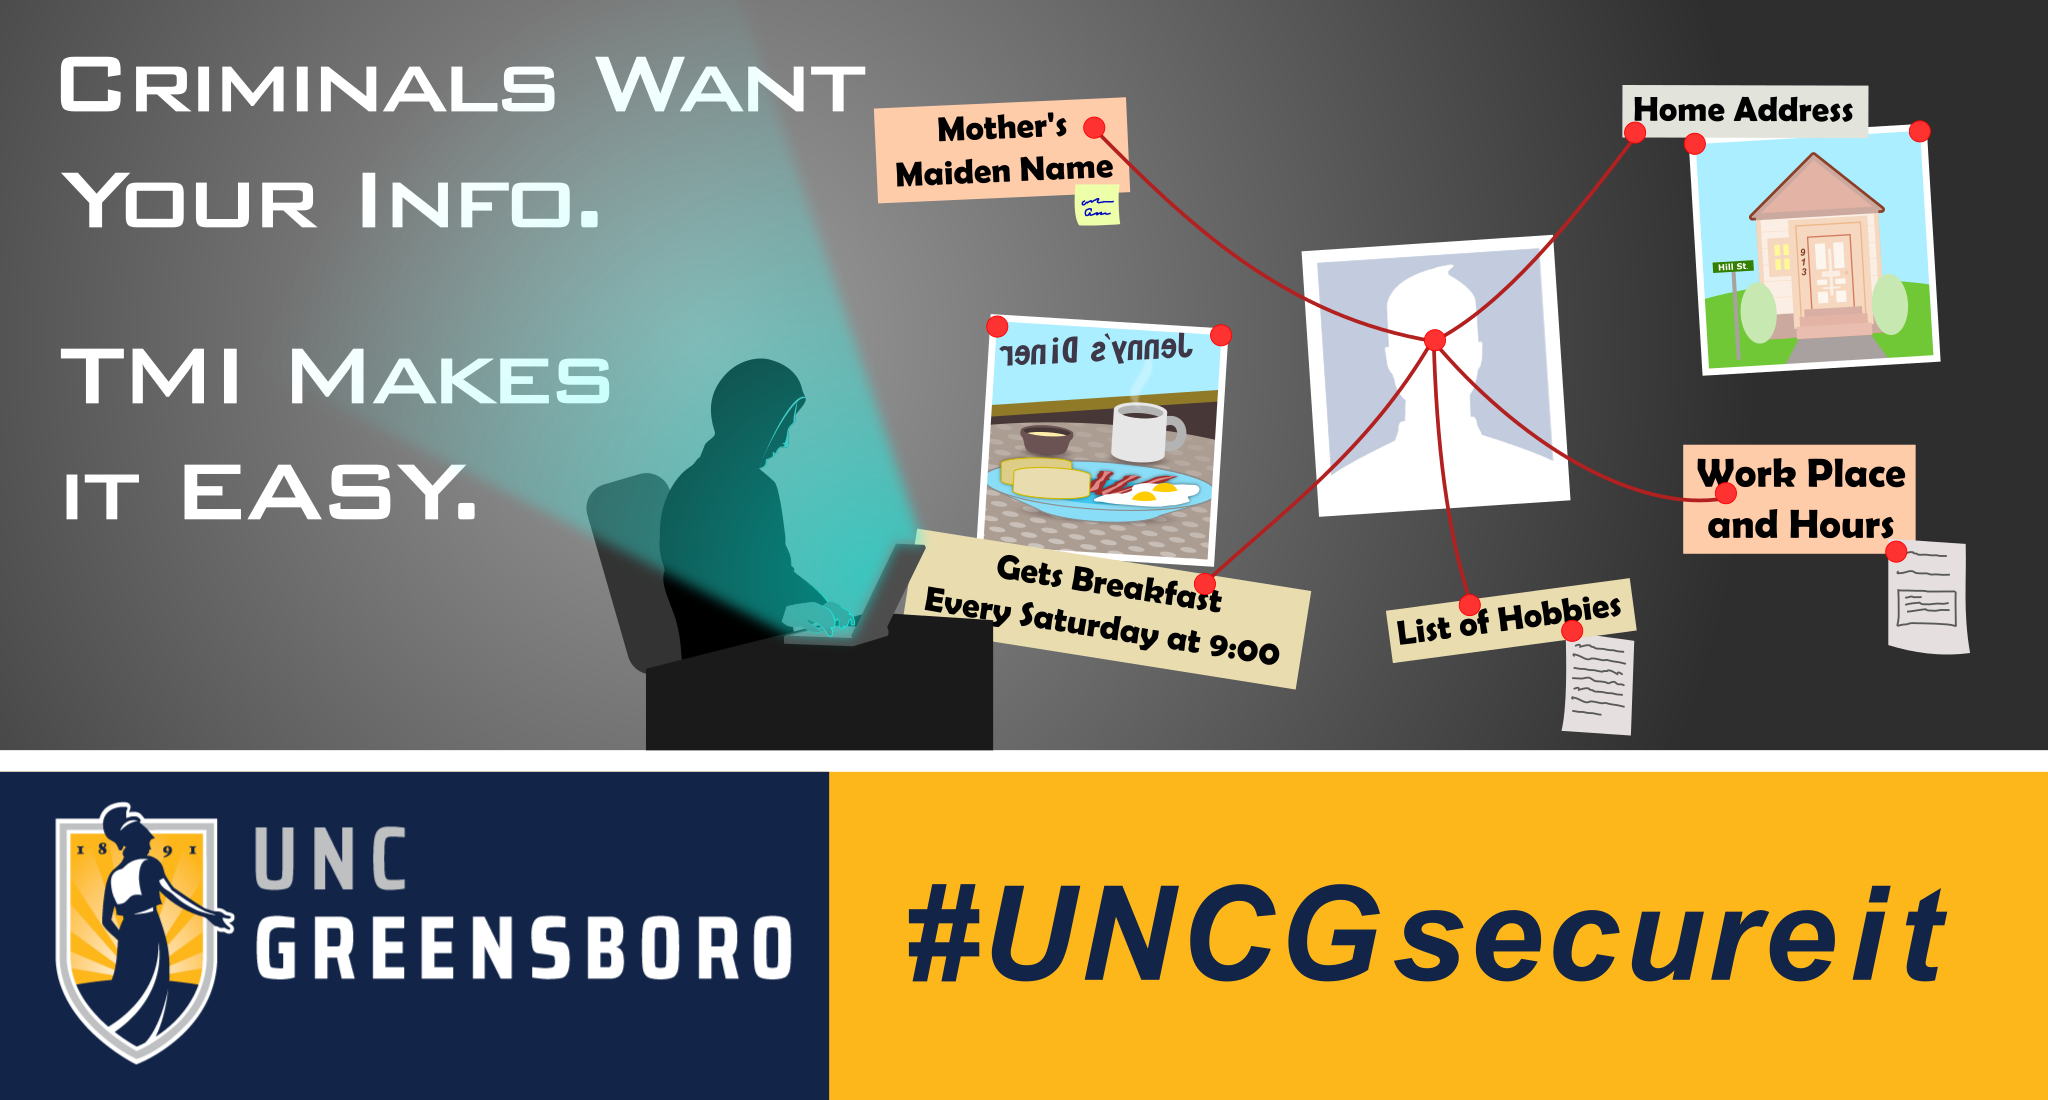 """Image of person sitting at desk in front of computer. It appears he is entering various bits of personal information like """"mother's maiden name,"""" List of hobbies,"""" """"home address,"""" """"Gets breakfast every Saturday at 9:00 a.m."""" The caption reads """"Criminals want your info. TMI makes it easy.""""  #UNCGsecureit"""